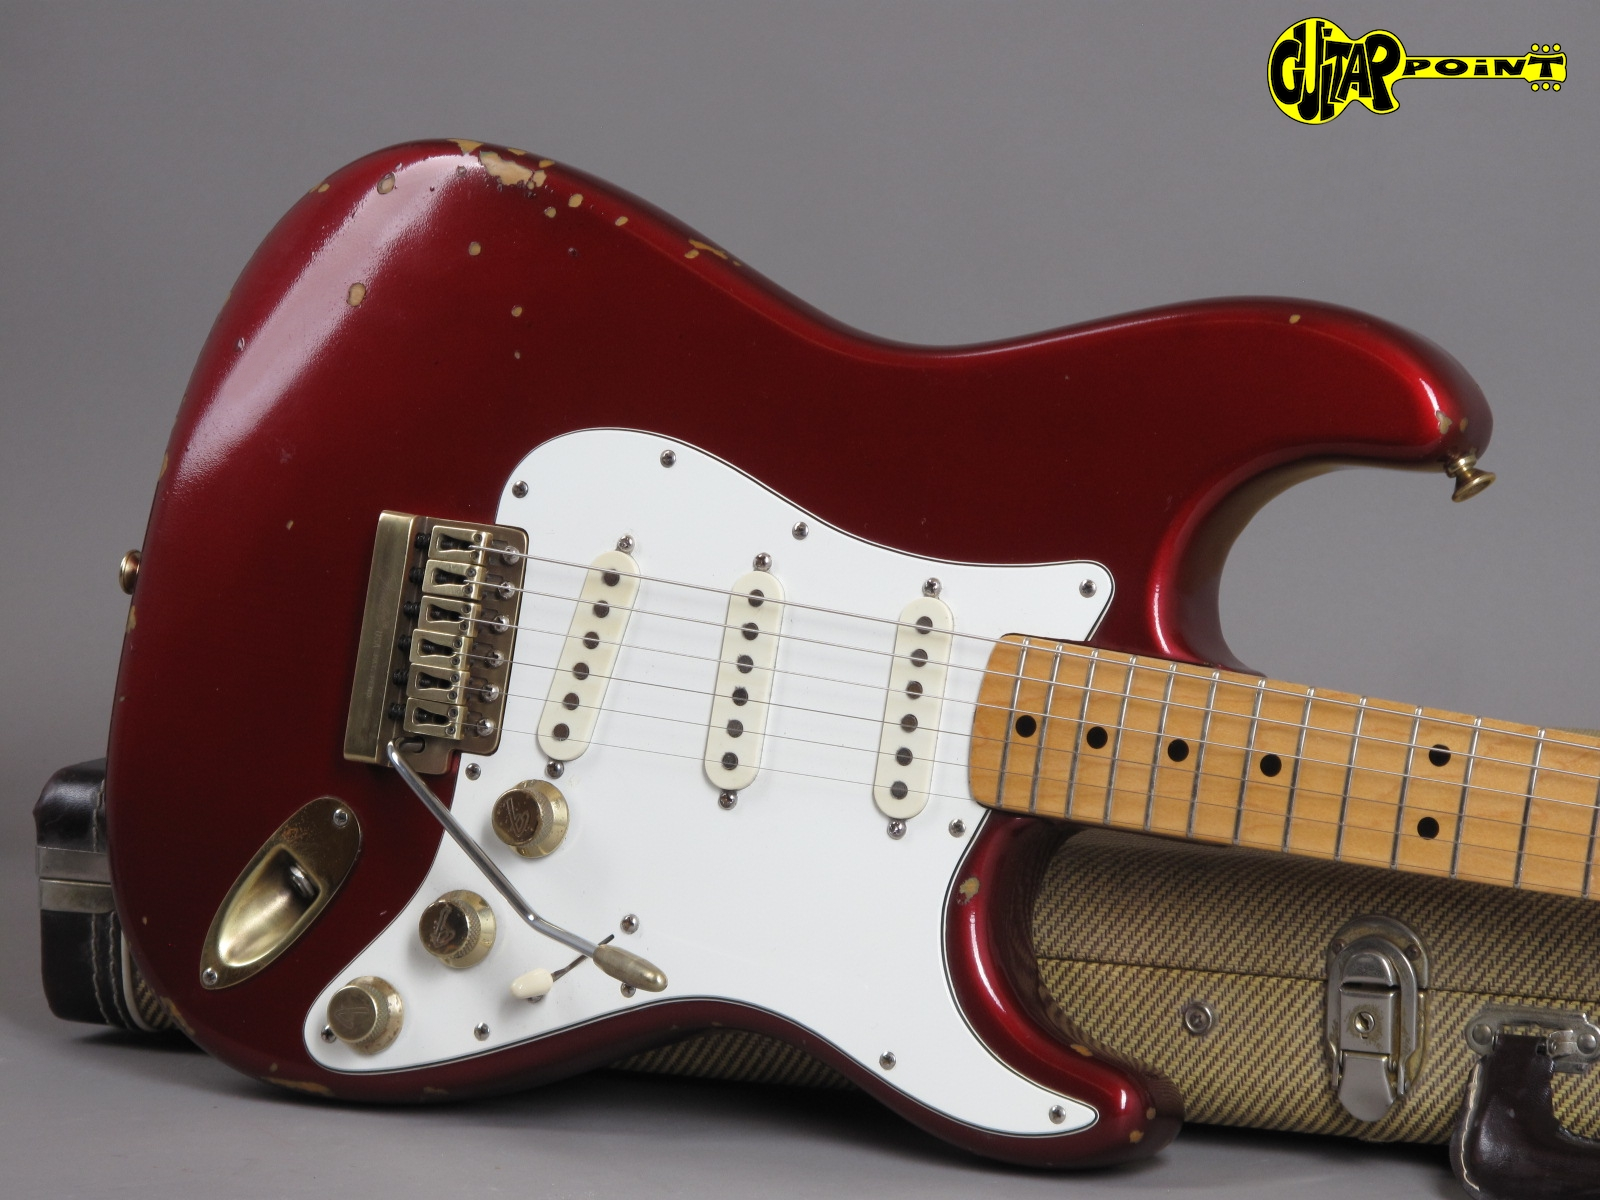 https://guitarpoint.de/app/uploads/products/1981-fender-stratocaster-the-strat-candy-apple-red/Fender81TheStratCAR_E029747_19.jpg